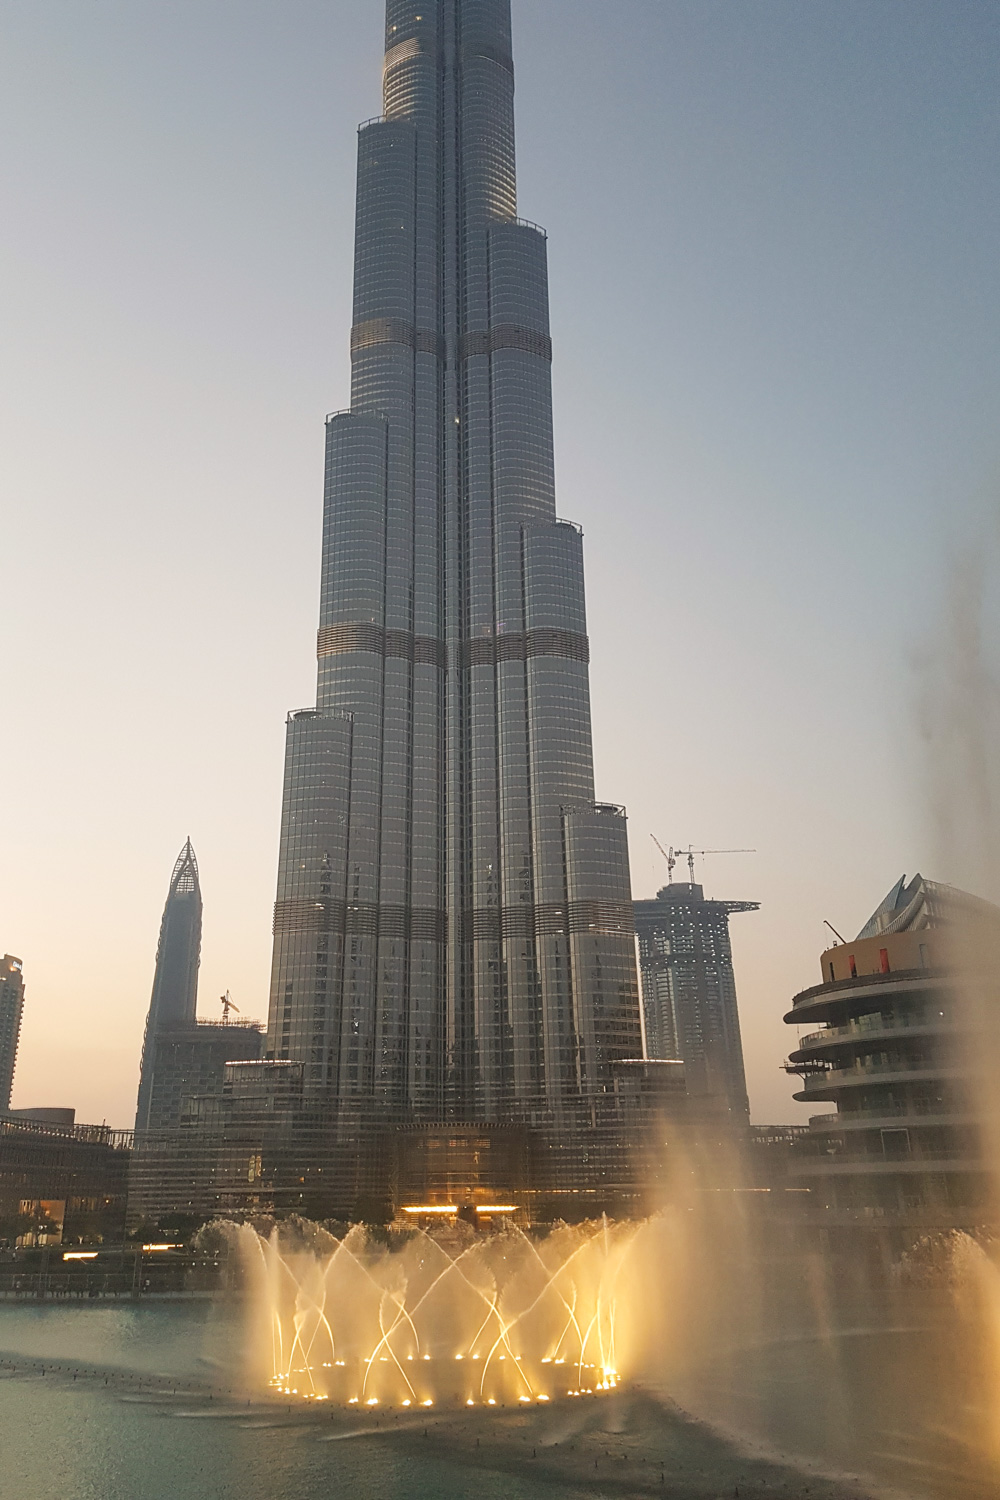 Dubai Fountain and Burj Khalifa at Sunset